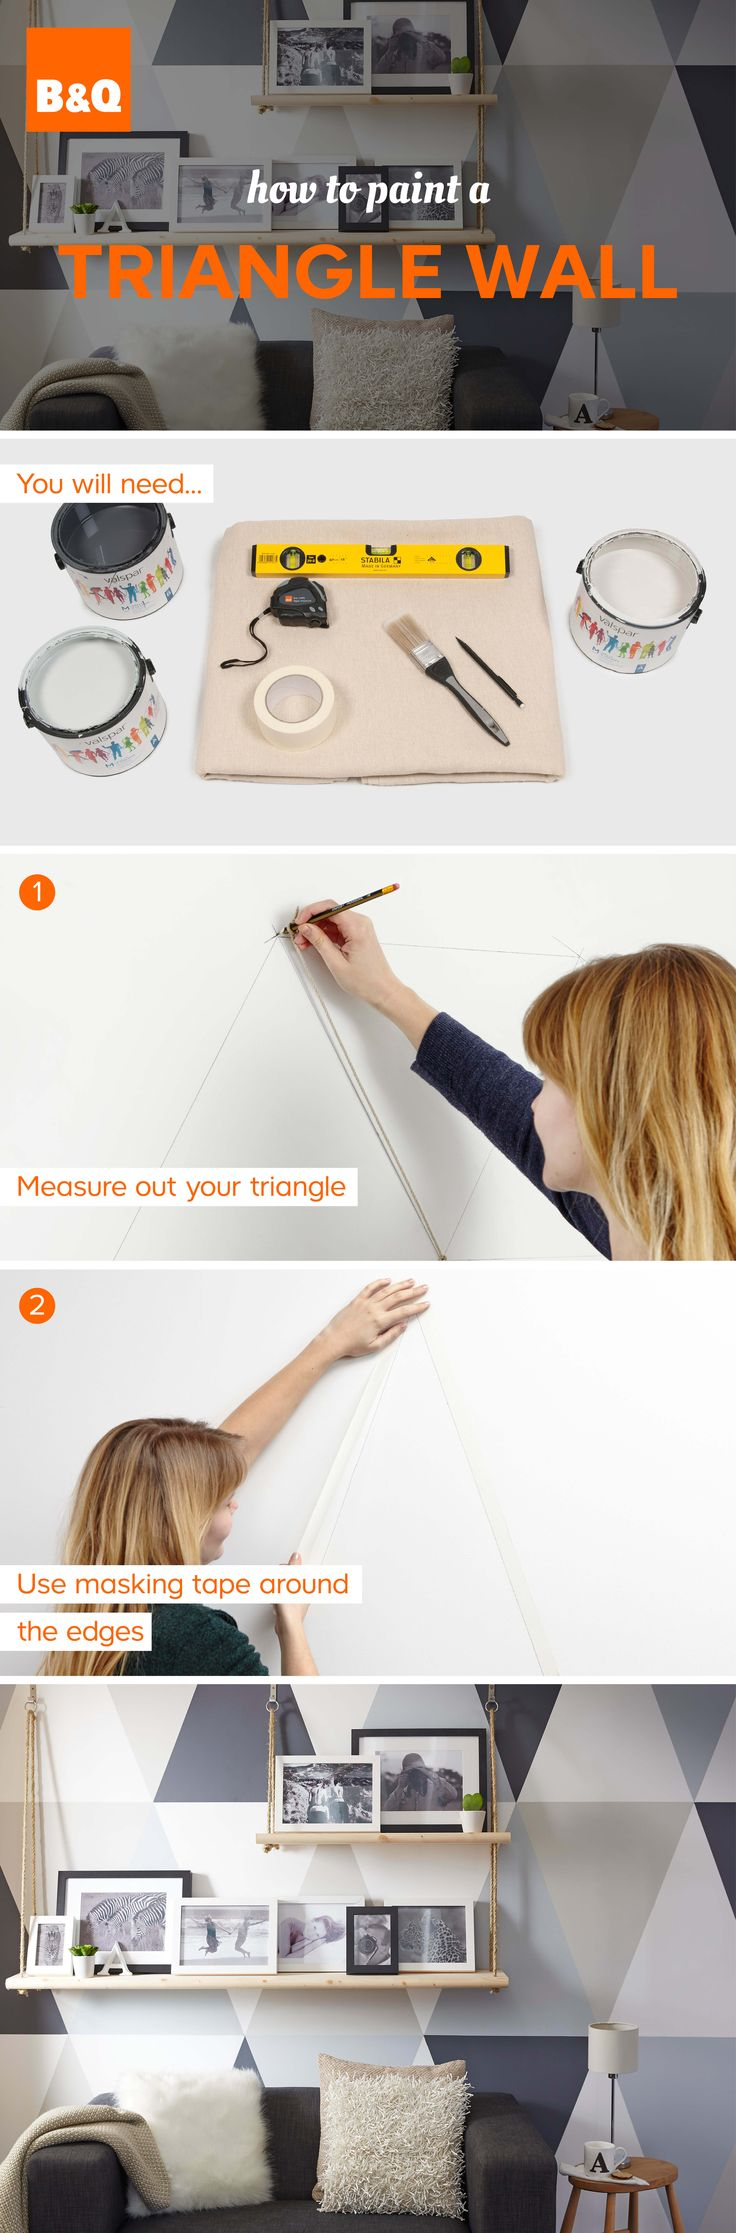 Make a feature of your wall with painted triangles. Simple and really effective.